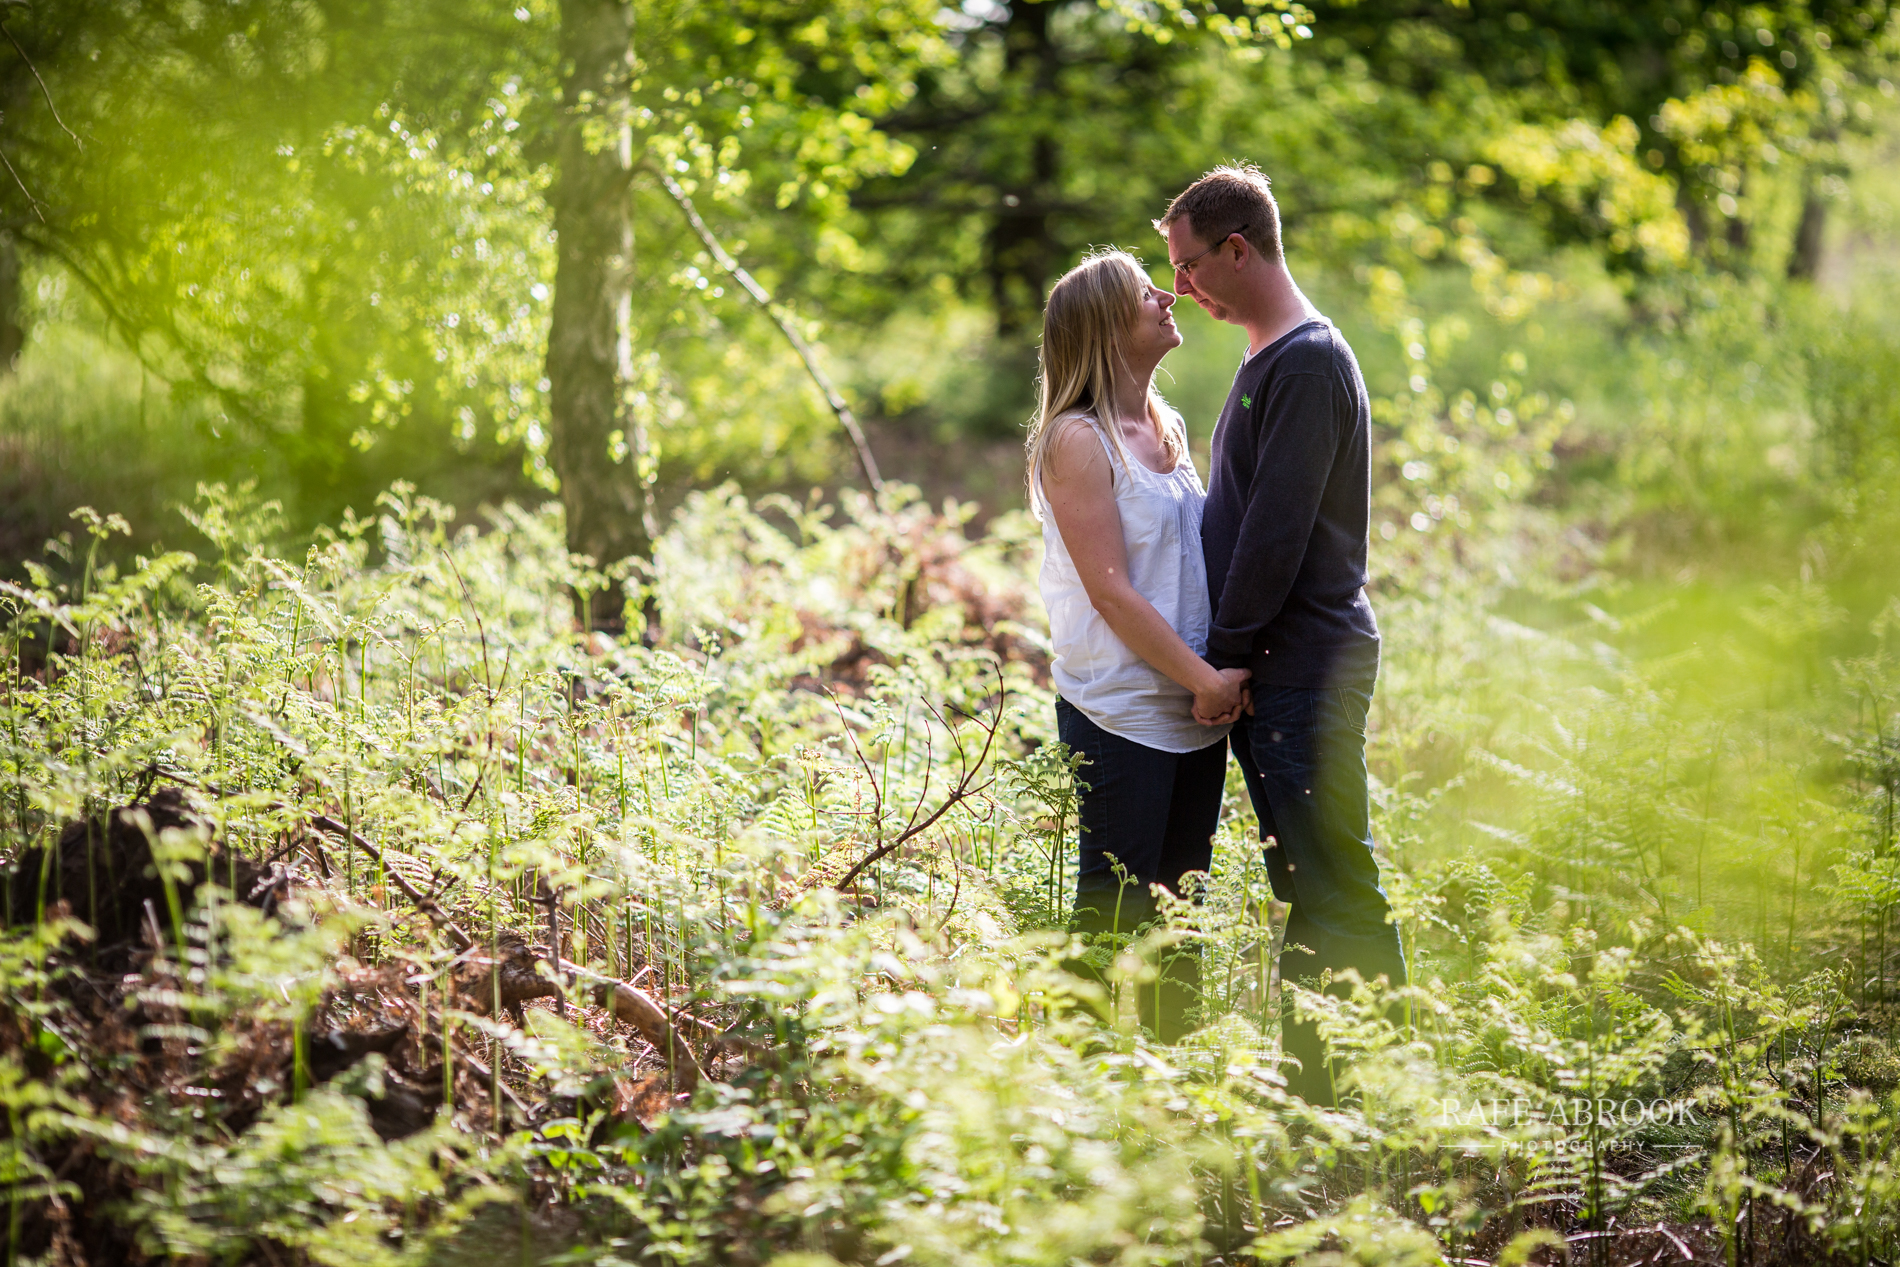 lorna & gary engagement shoot rspb sandy the lodge bedfordshire-1006.jpg